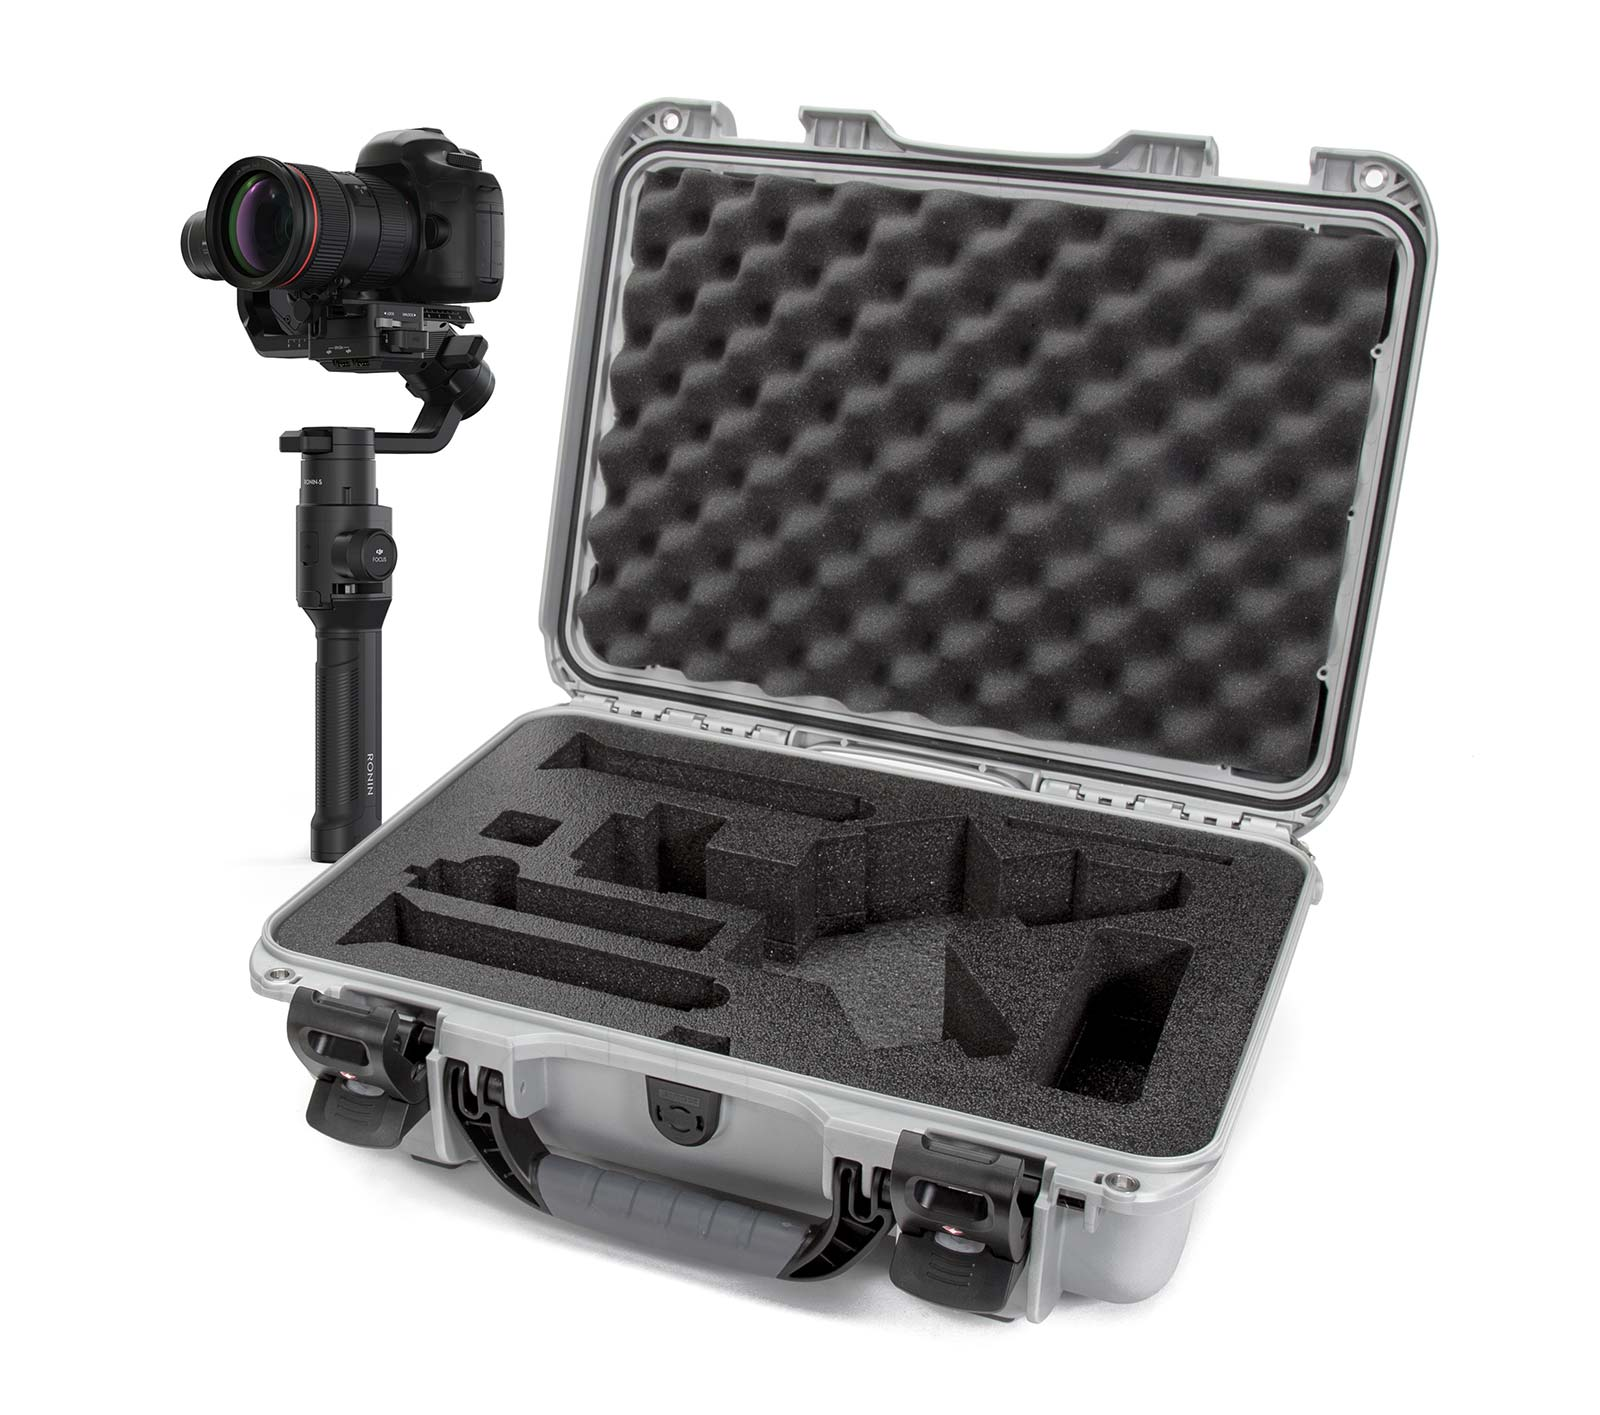 Nanuk 923 in Silver with the DJI Ronin-S